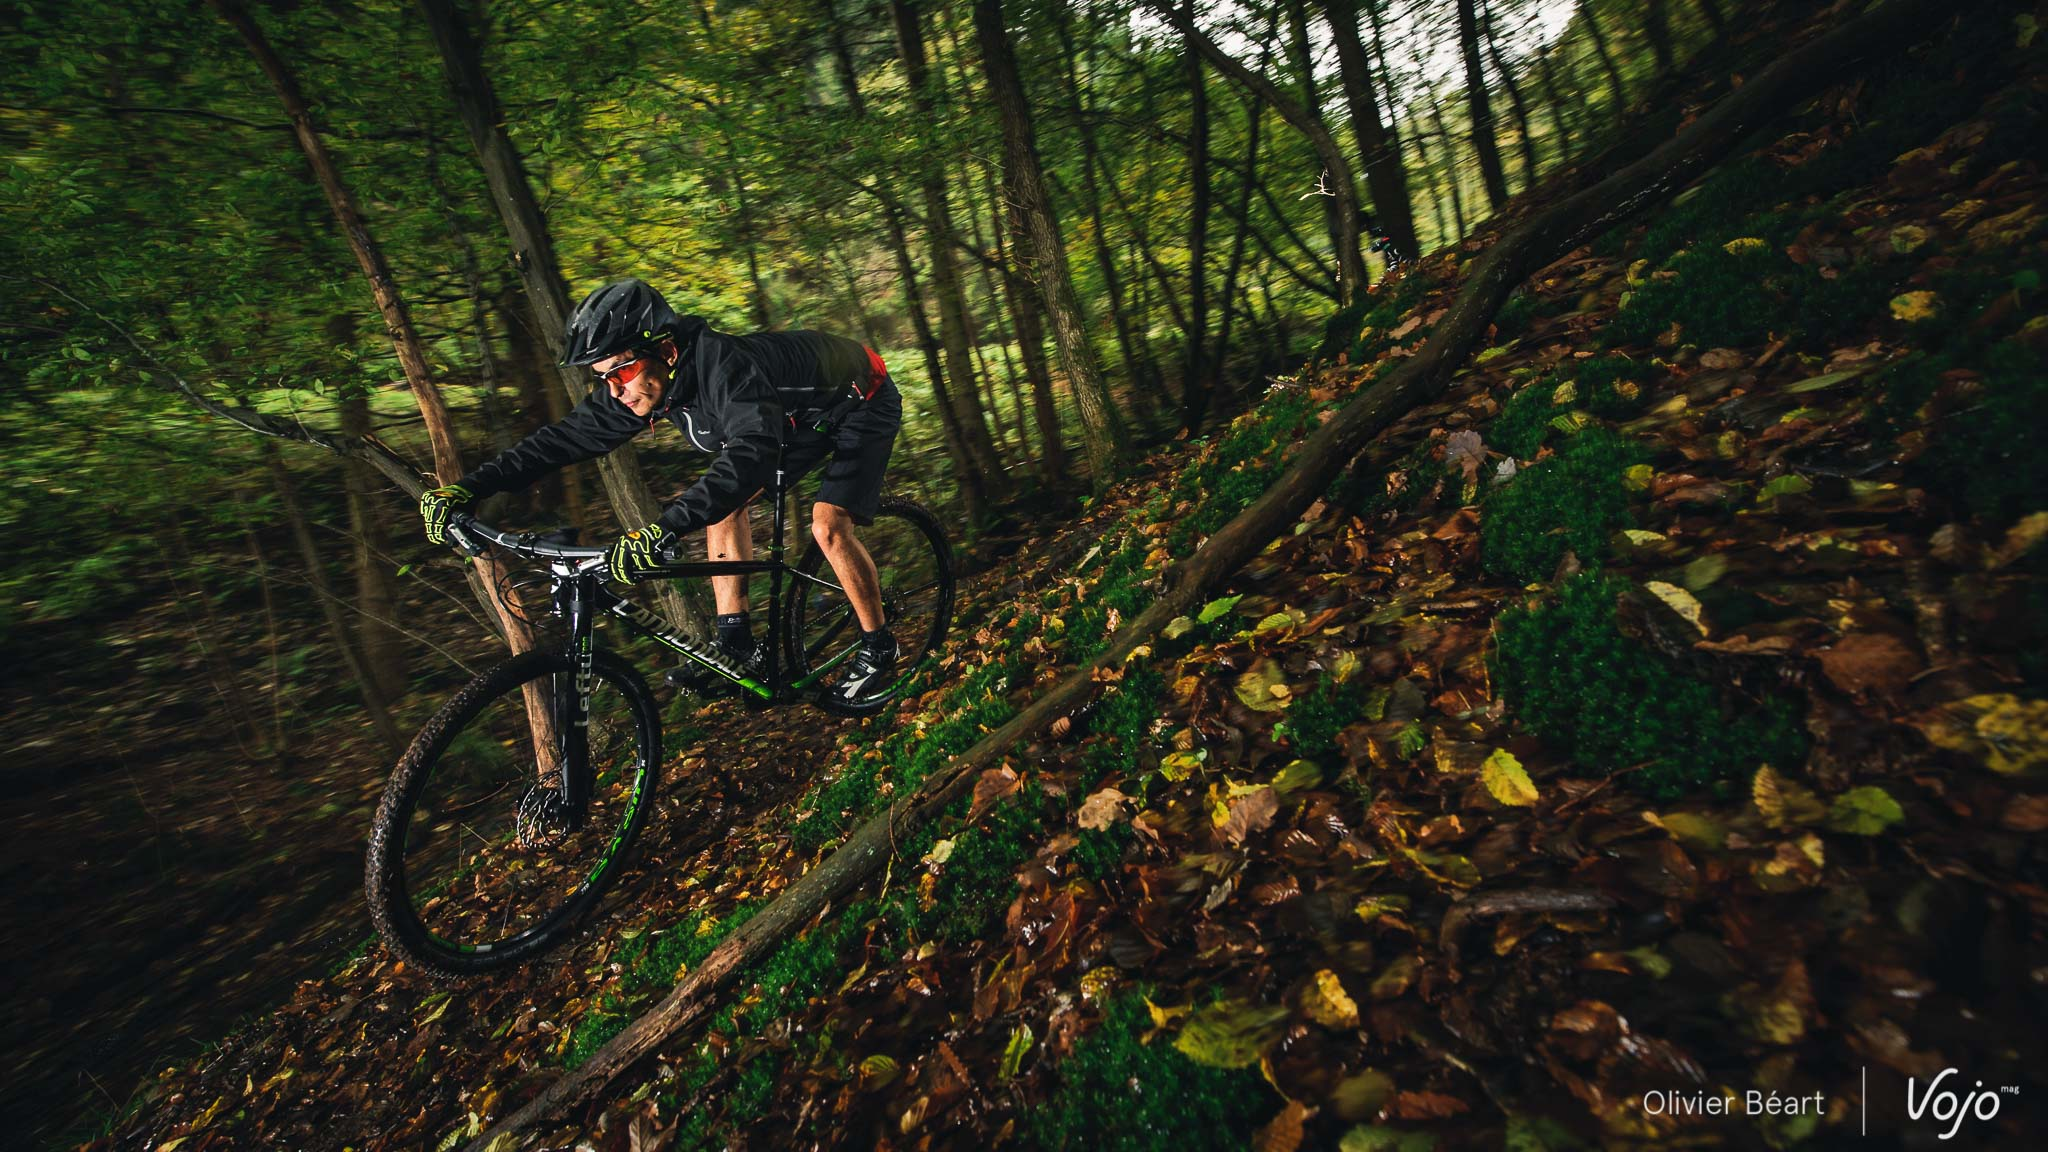 Cannondale_F-Si_Carbon_4_Test_Action_Copyright_OBeart_VojoMag-12b